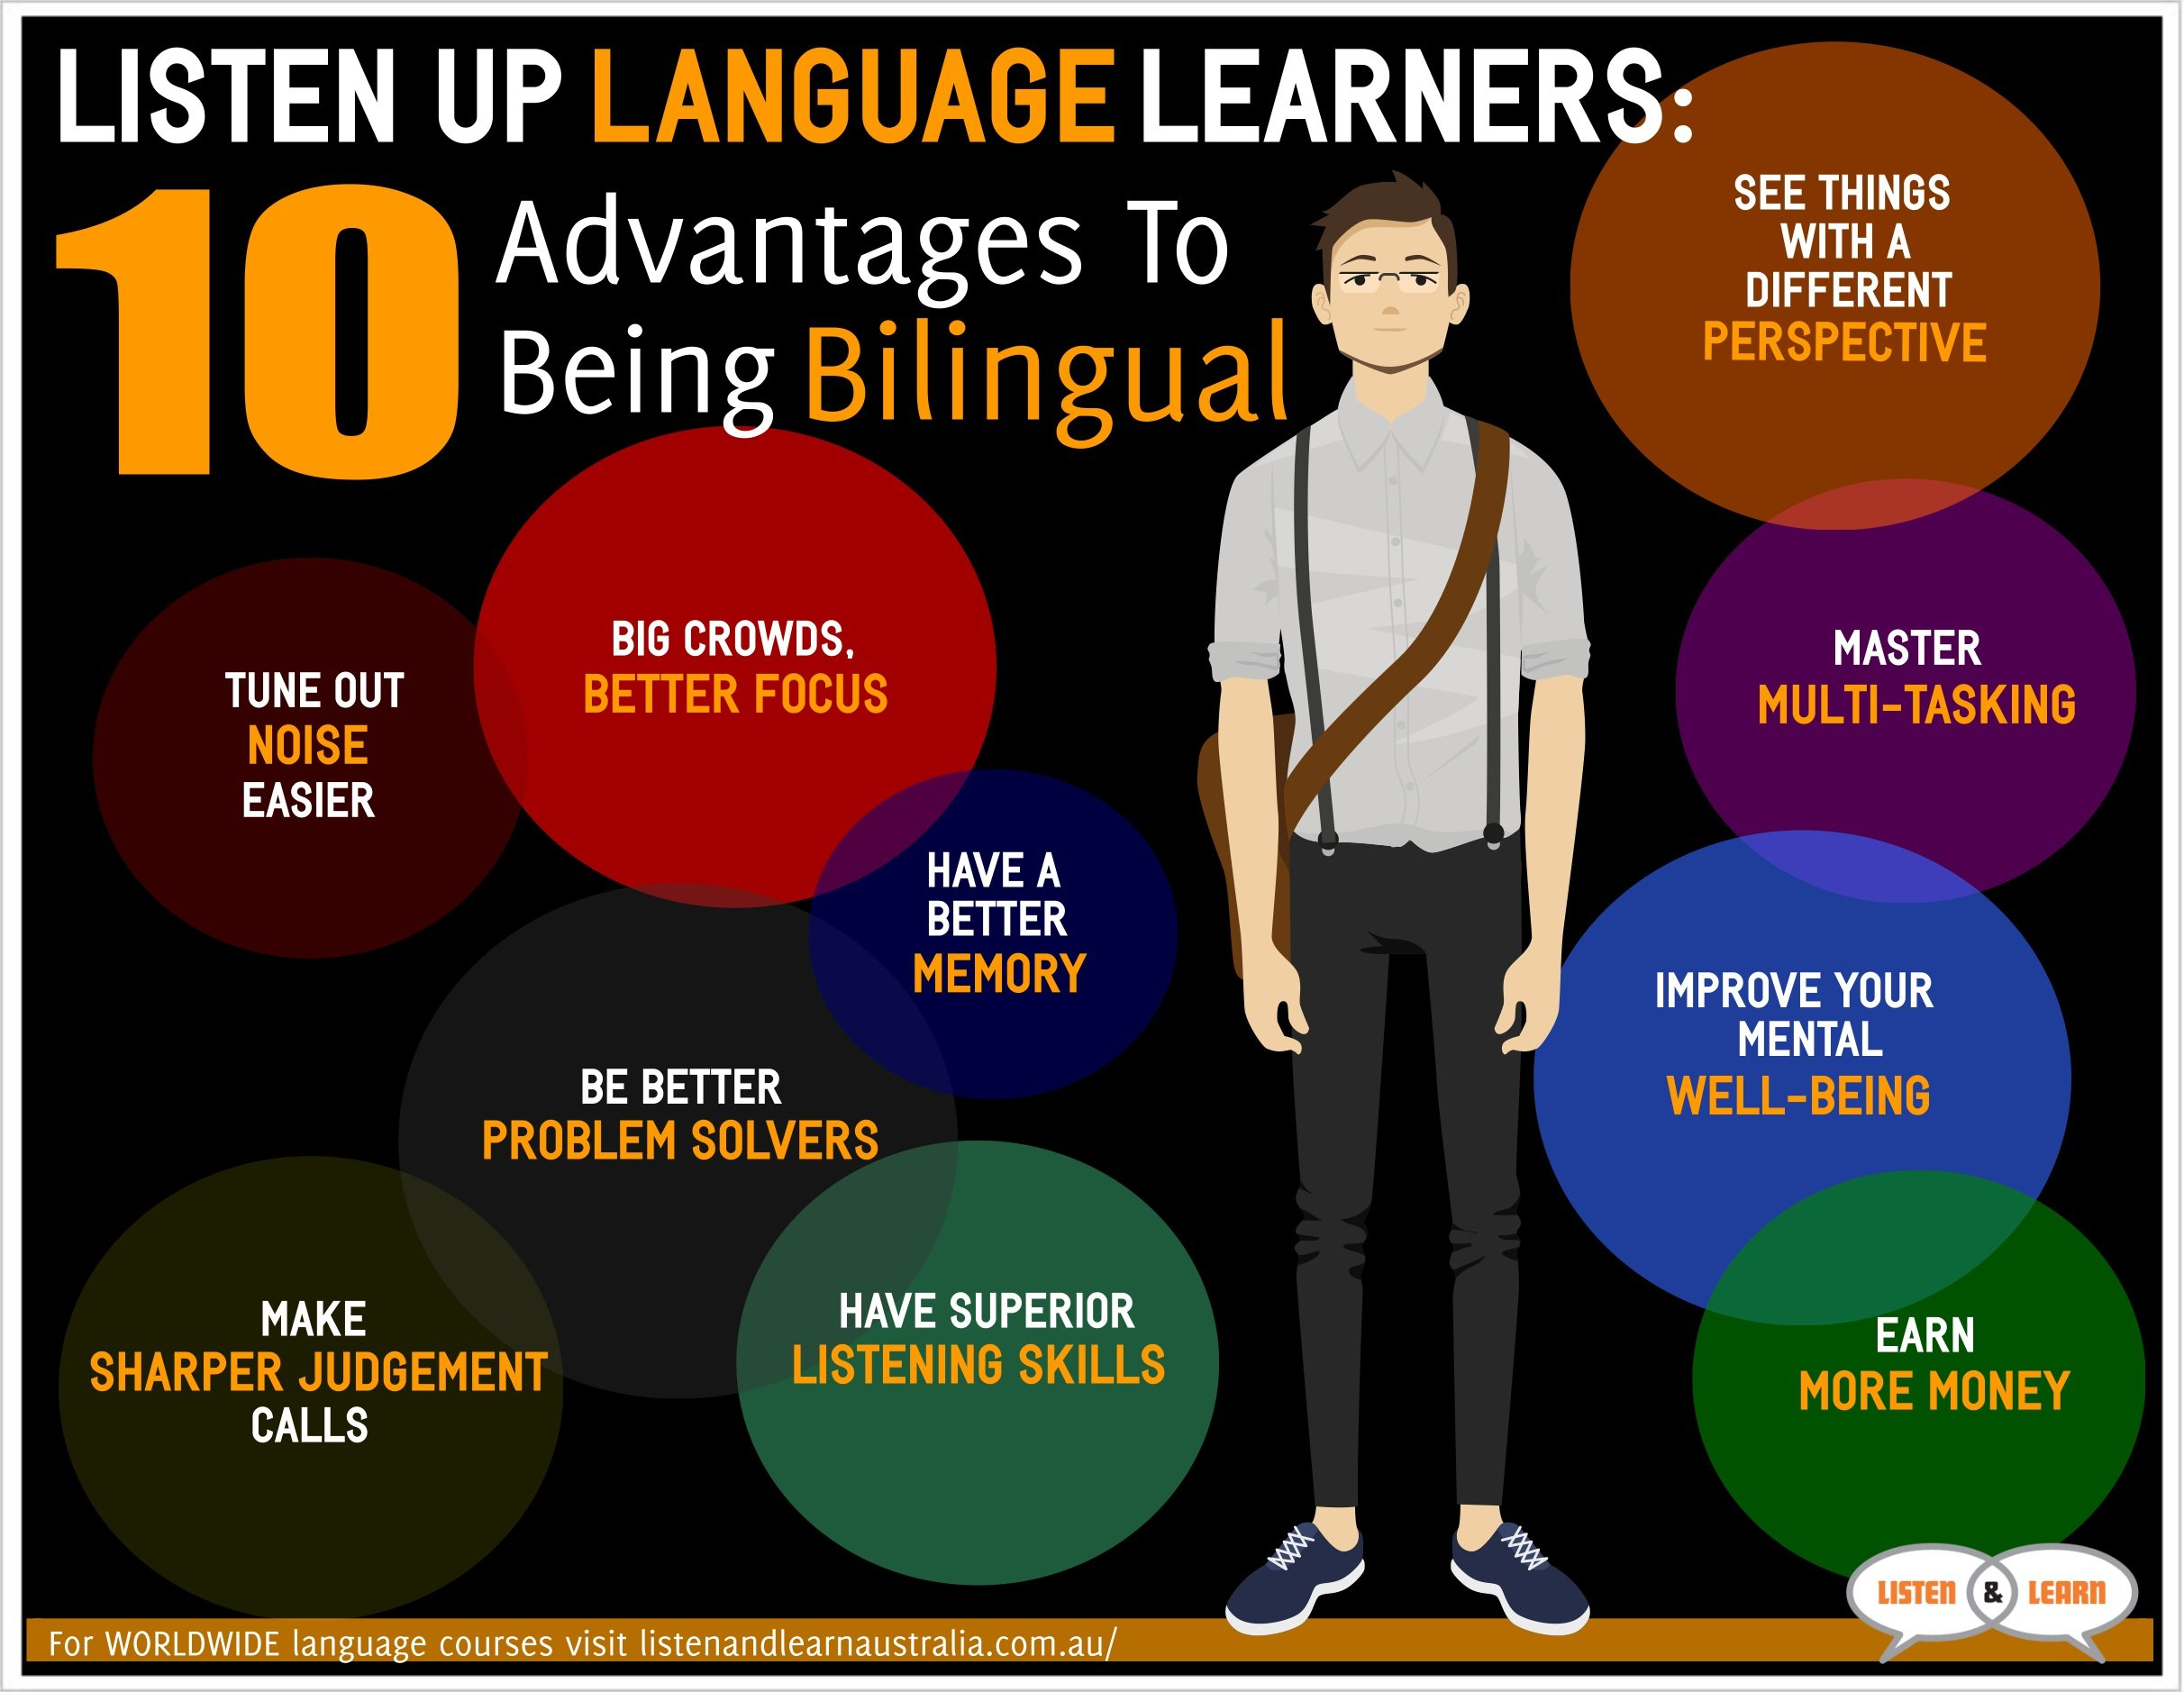 Advangages of Being Bilingual